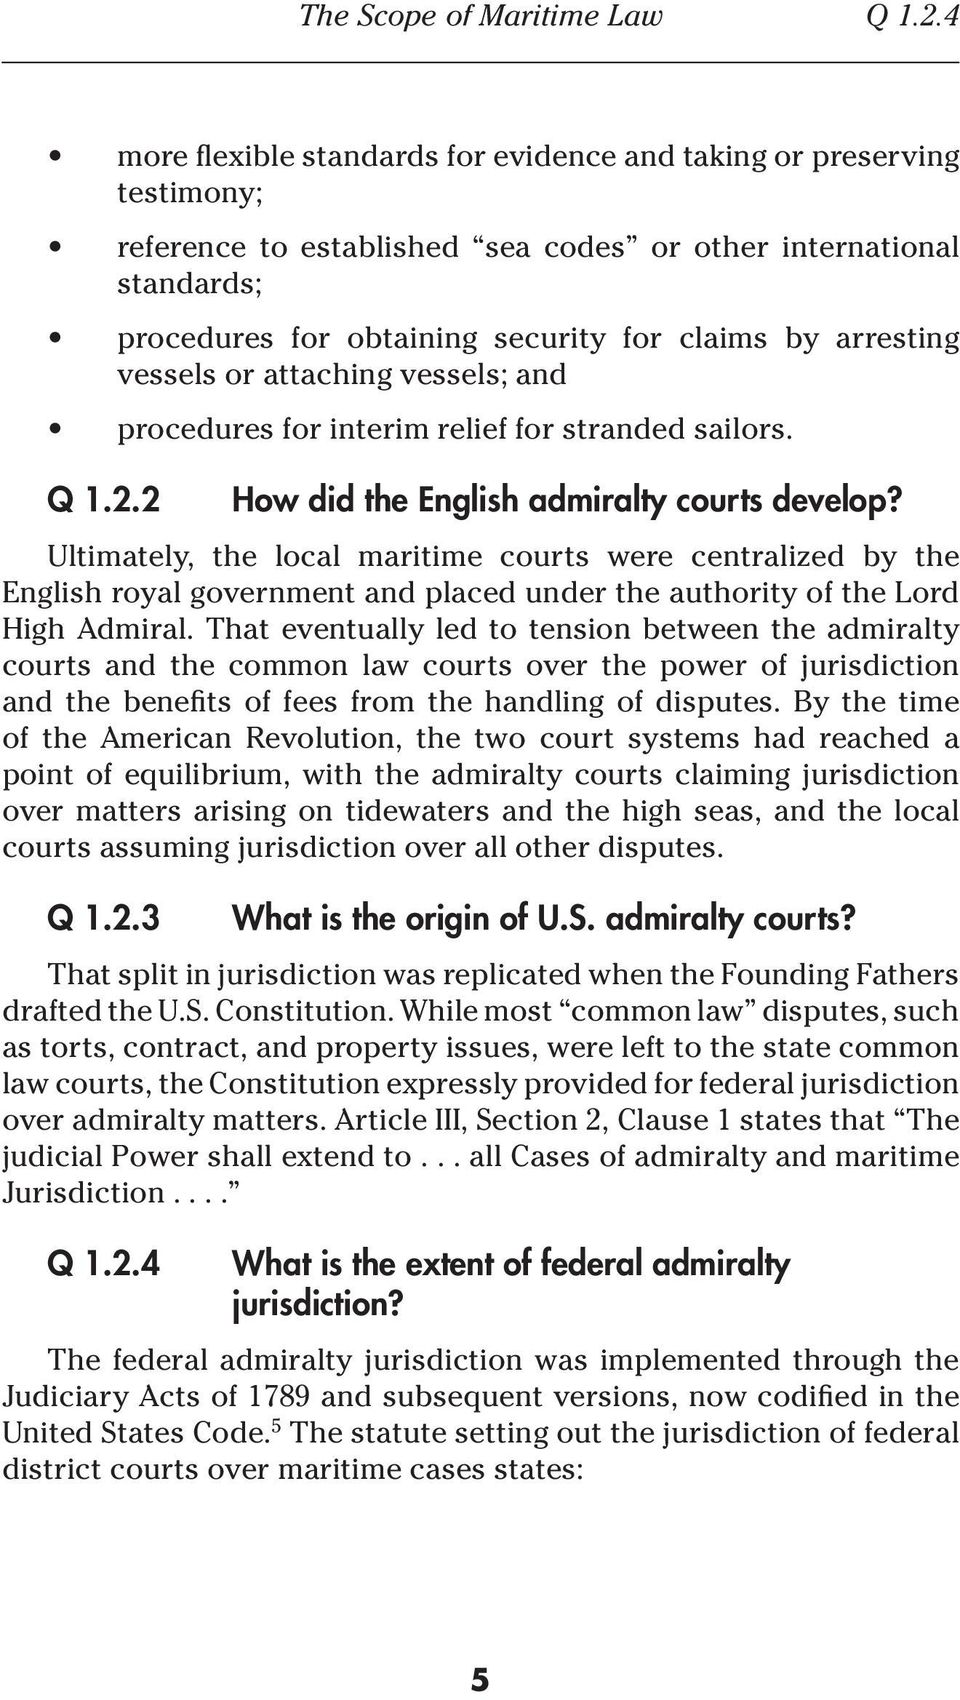 arresting vessels or attaching vessels; and procedures for interim relief for stranded sailors. Q 1.2.2 How did the English admiralty courts develop?